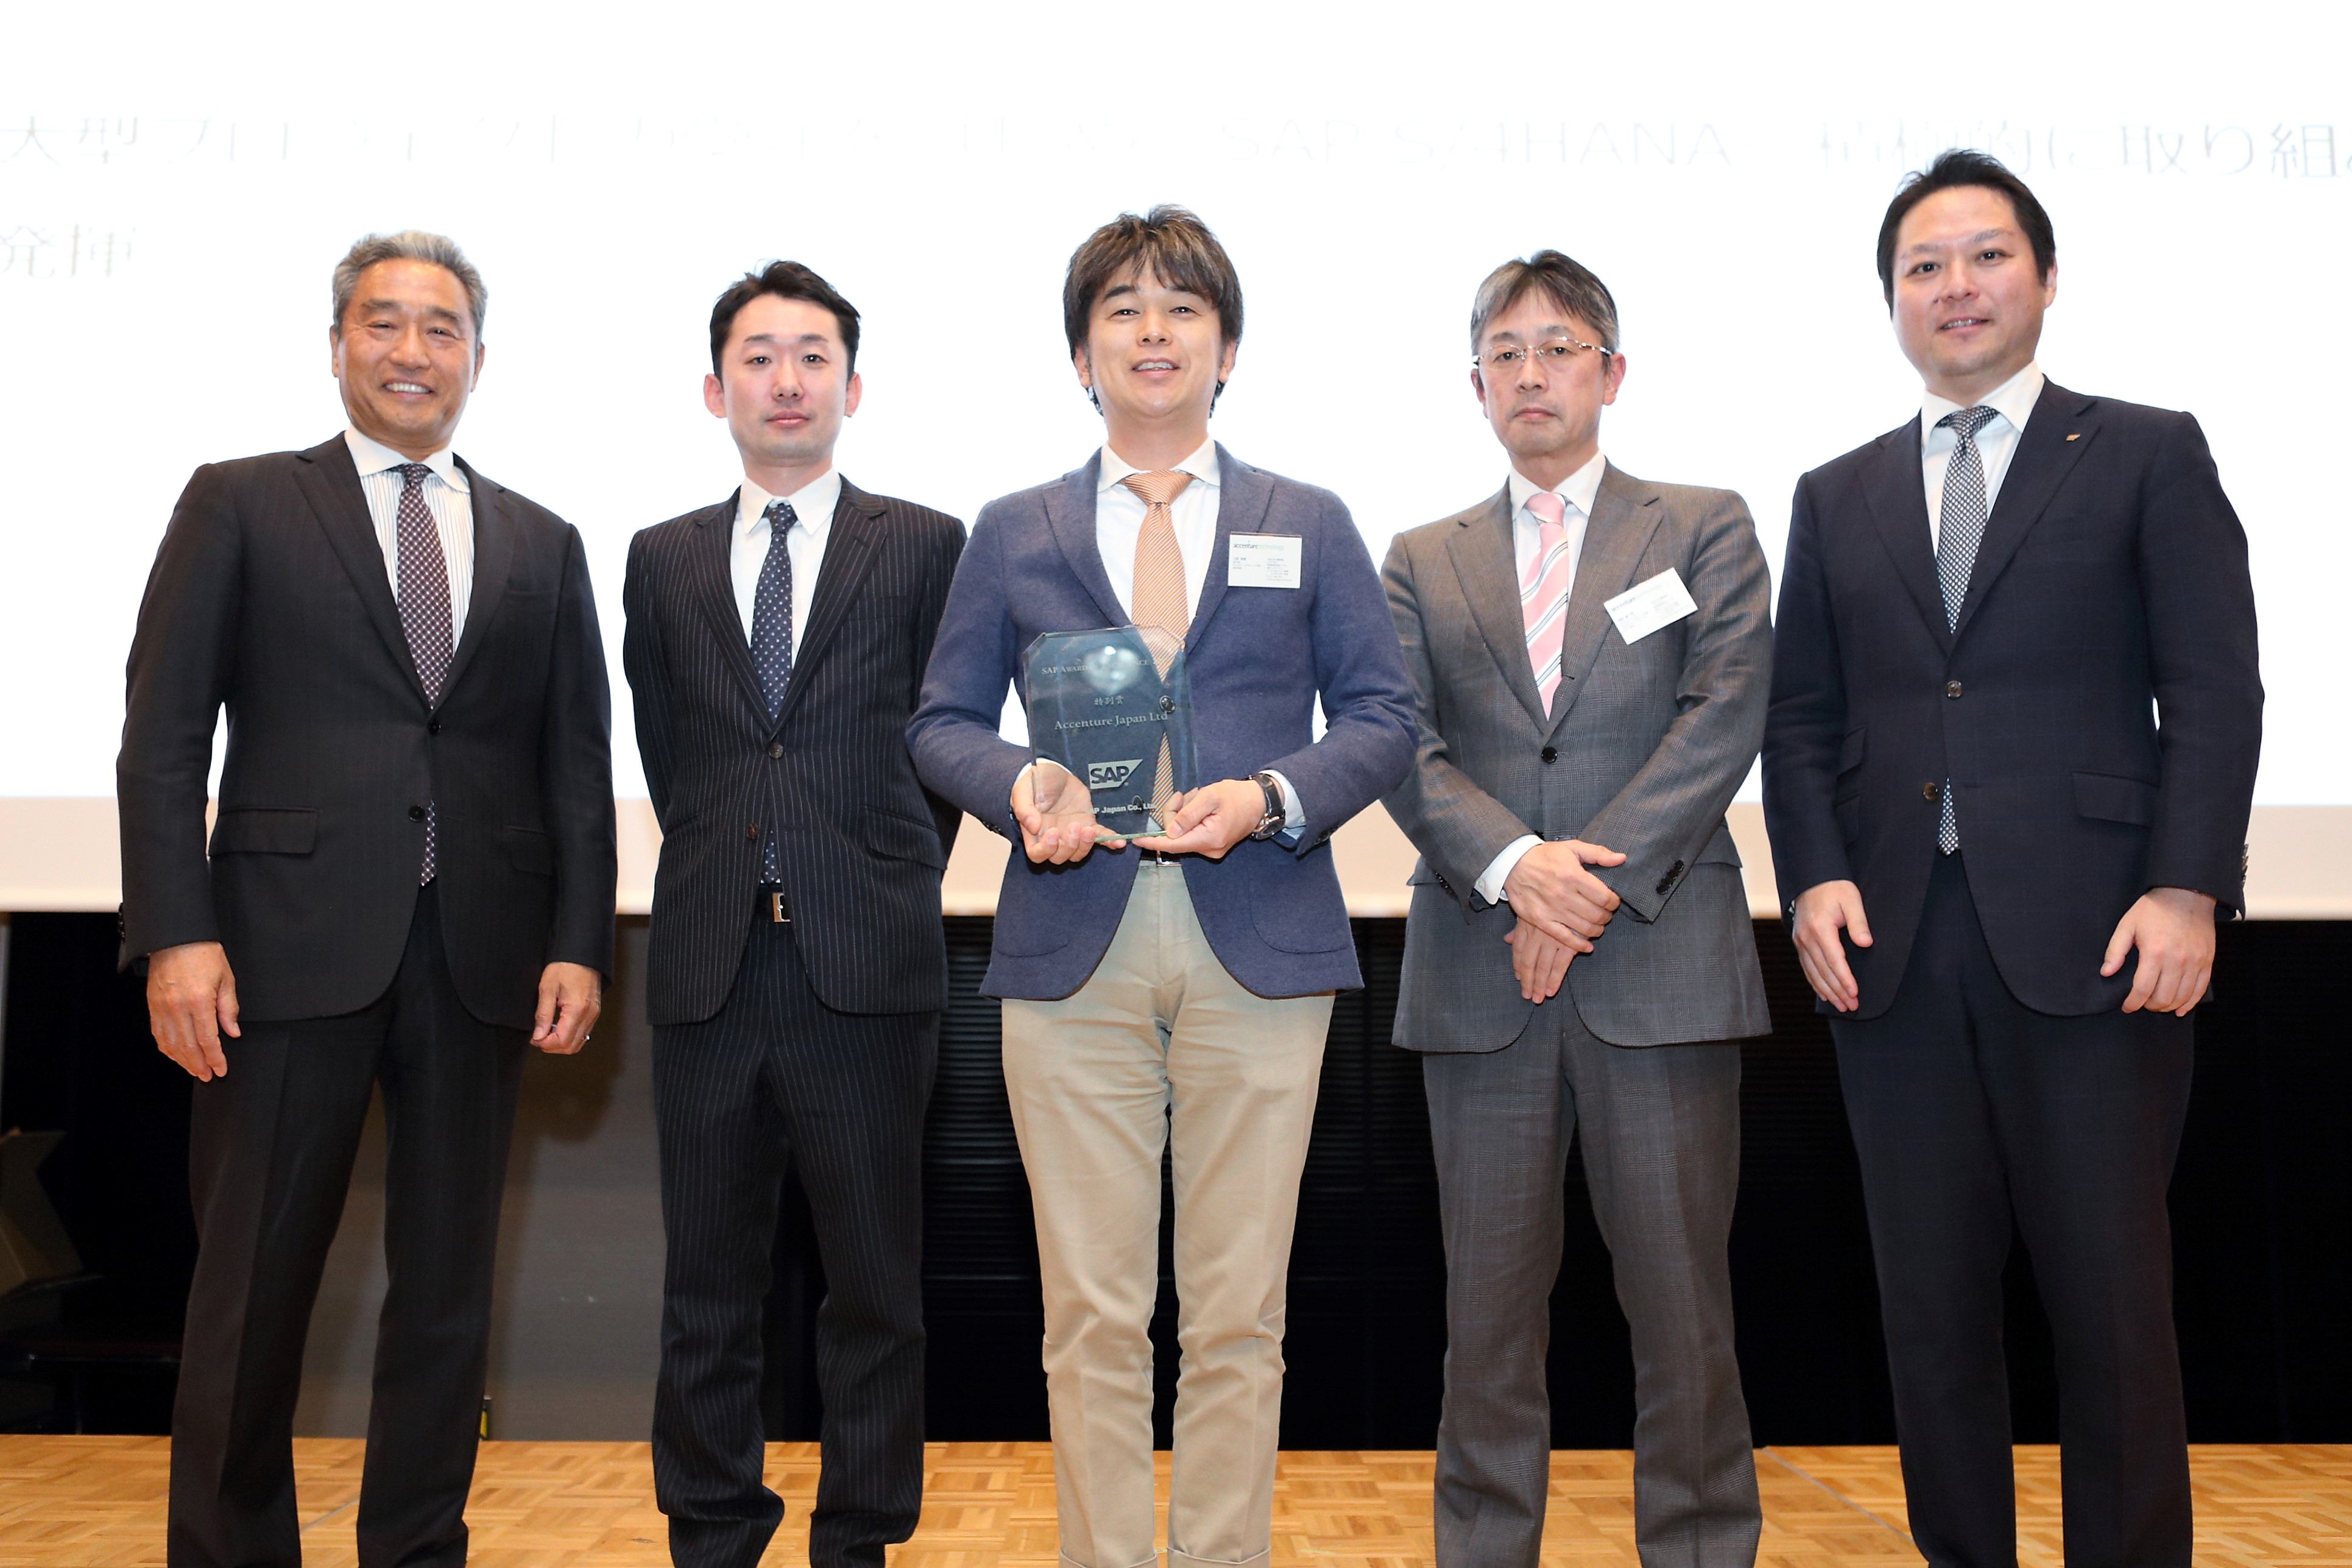 「SAP AWARD OF EXCELLENCE 2017」